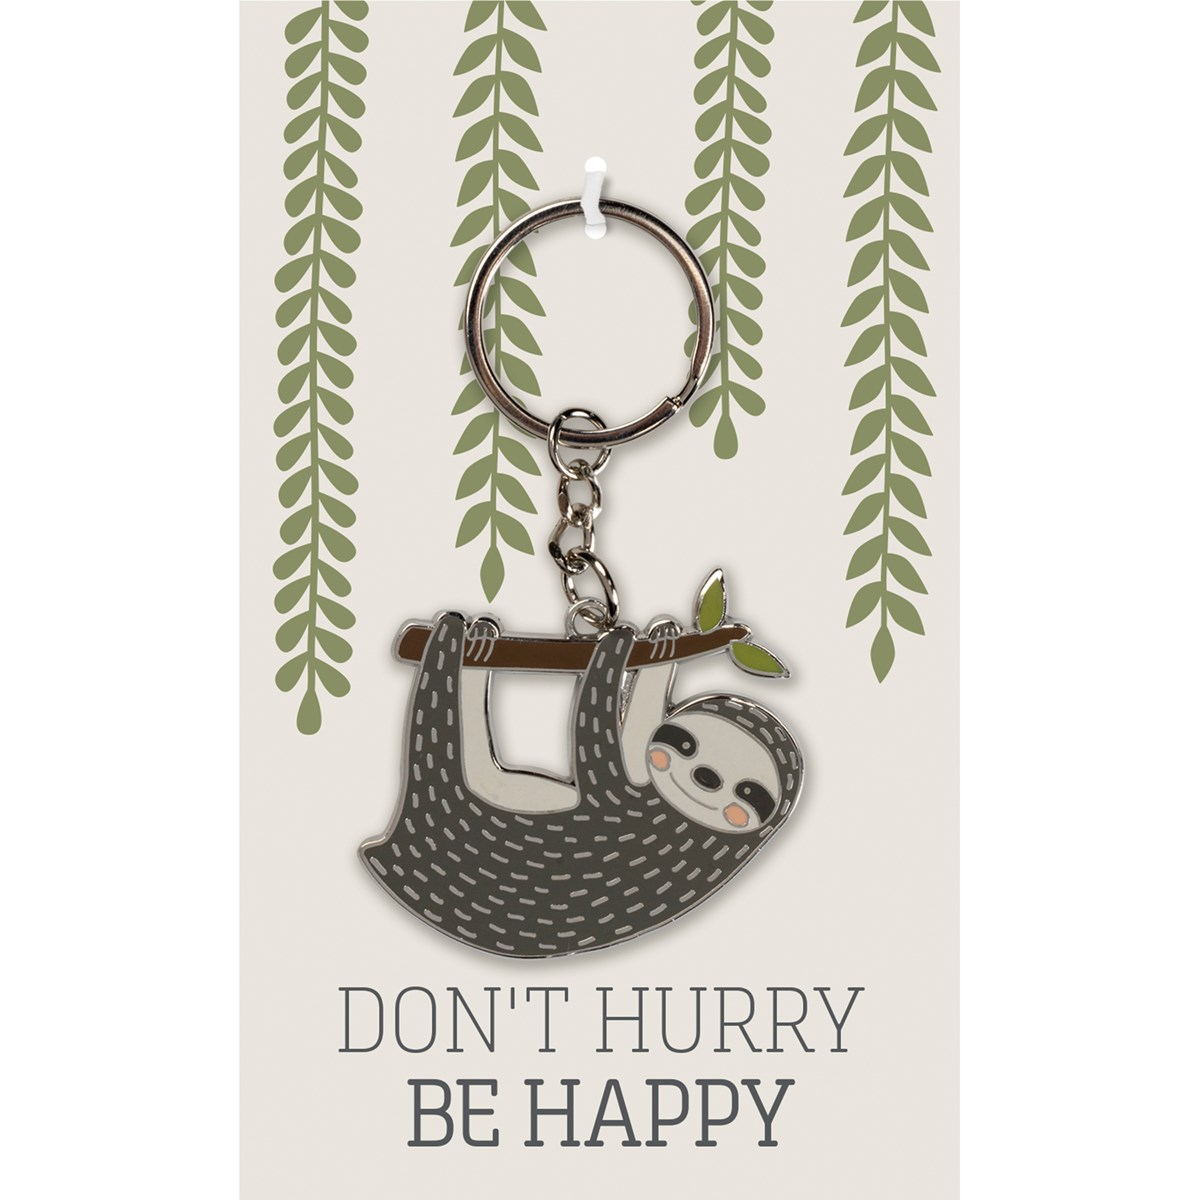 "Keychain - Don't Hurry - 1.75"" x 1.75"", Card: 3"" x 5"" - Metal, Enamel, Paper"